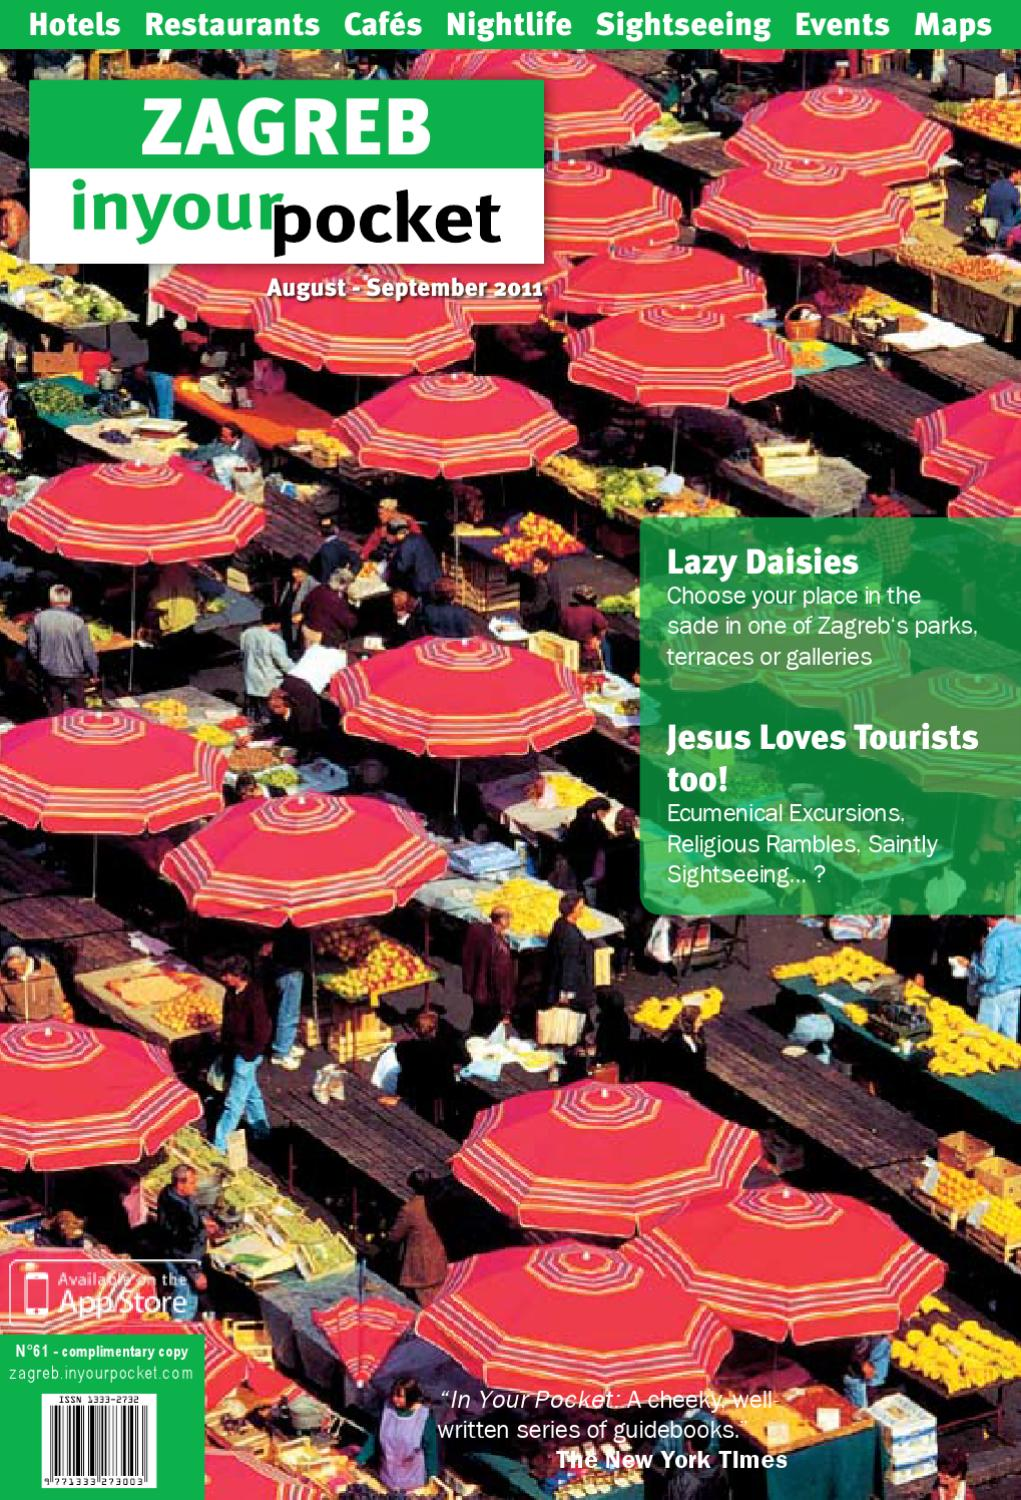 Zagreb In Your Pocket No61 By In Your Pocket City Guides Issuu